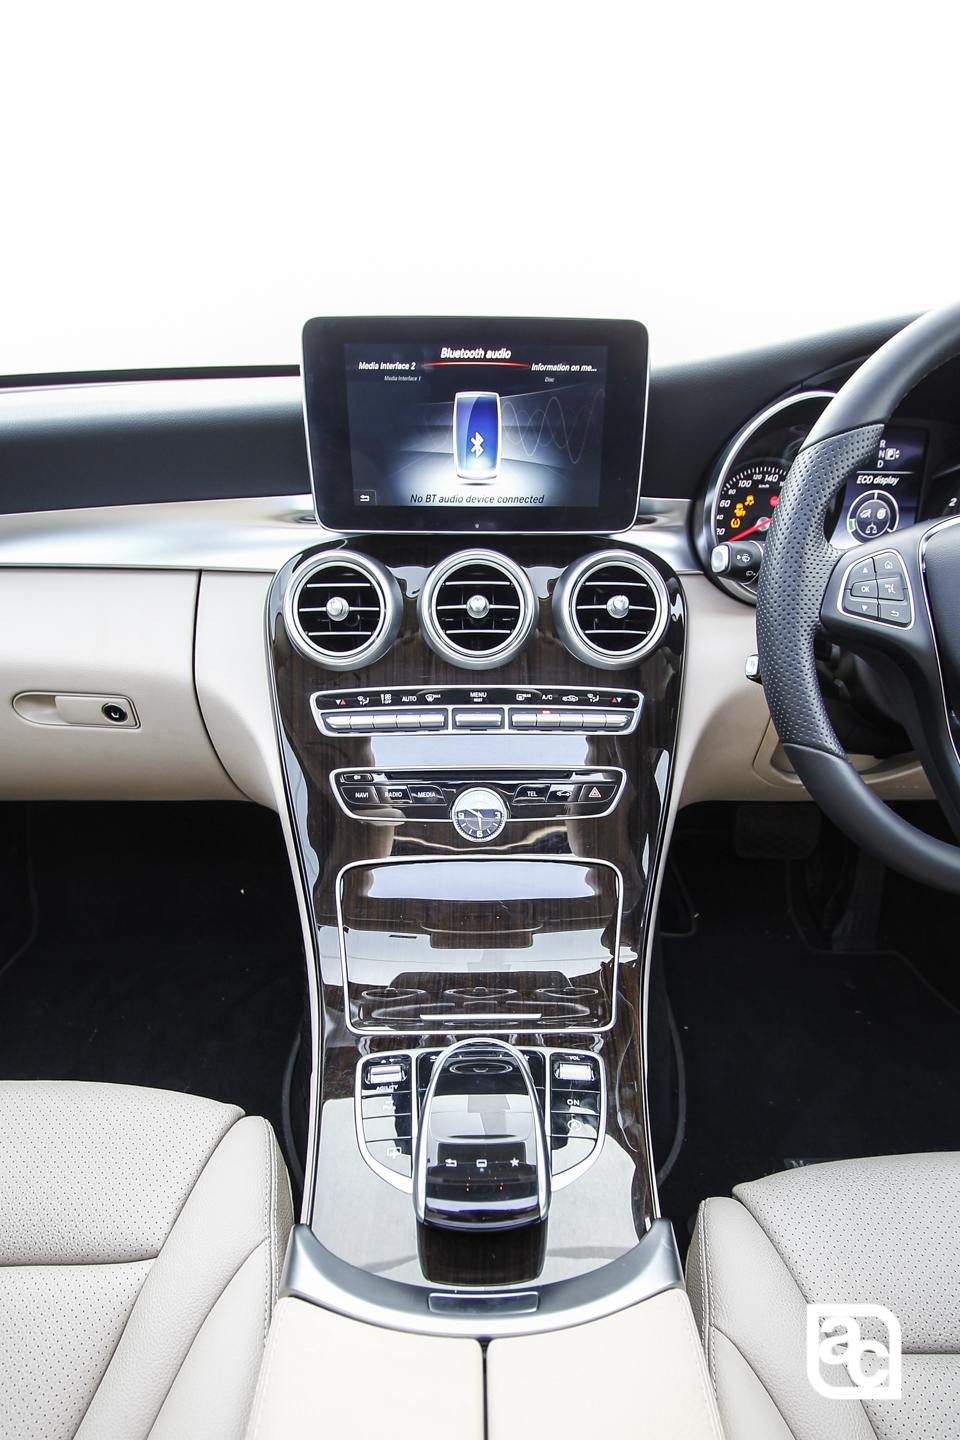 2015-Mercedes-Benz-Daimler-W205-c200-Front-rear-side-interior-250